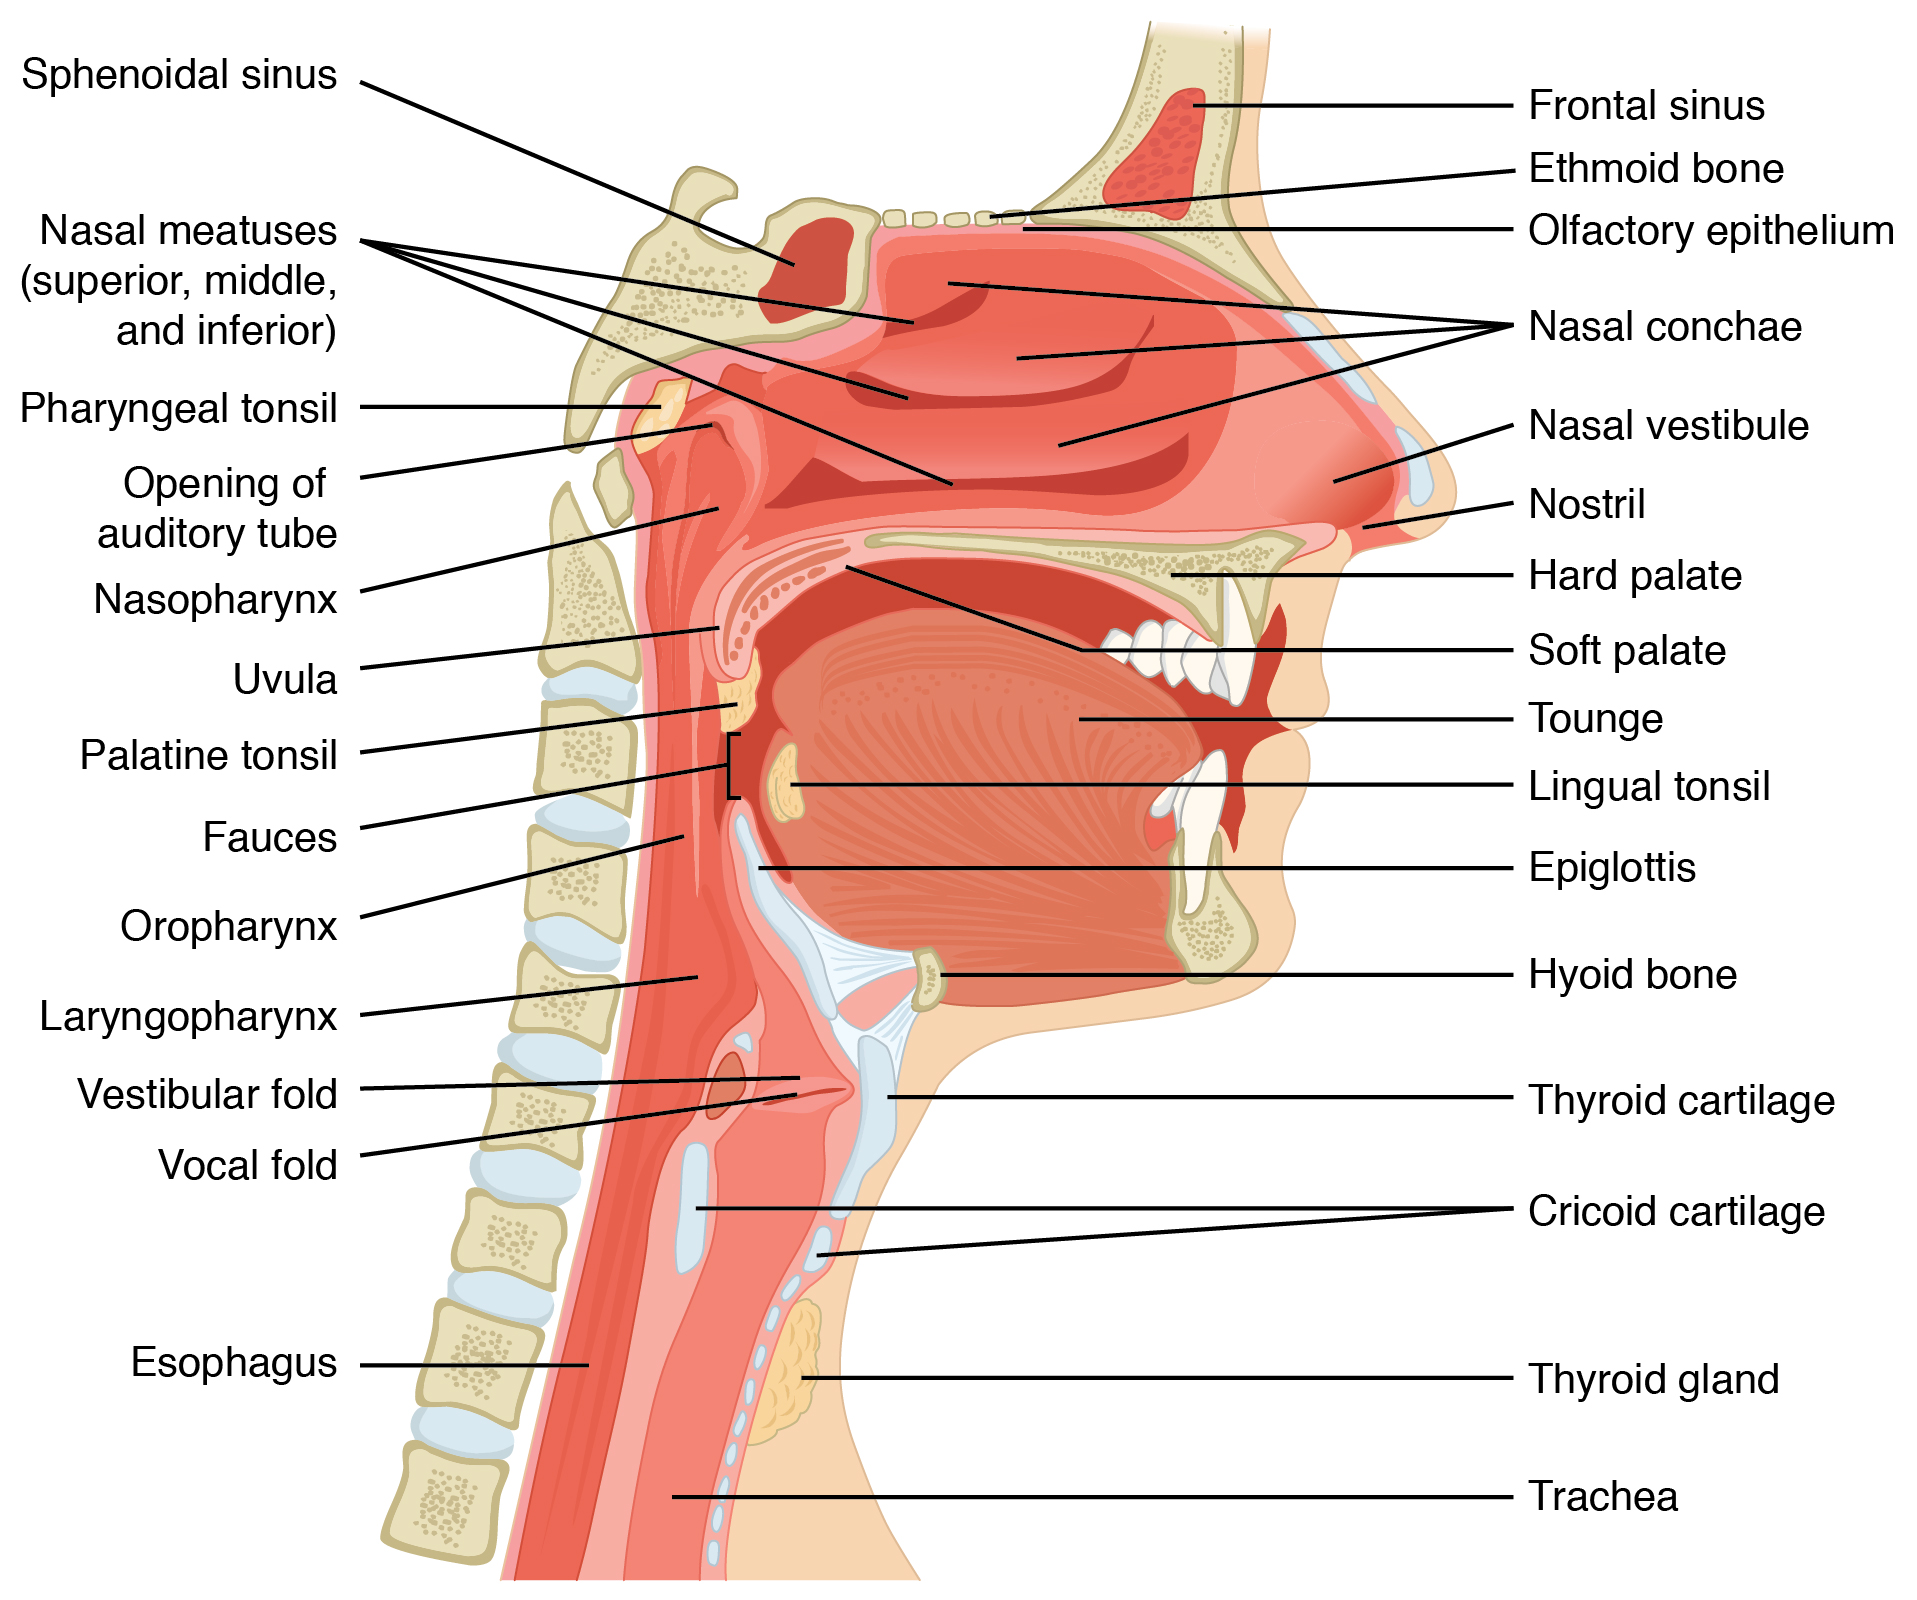 Textbook Anatomy Mouth Diagram - Electrical Work Wiring Diagram •